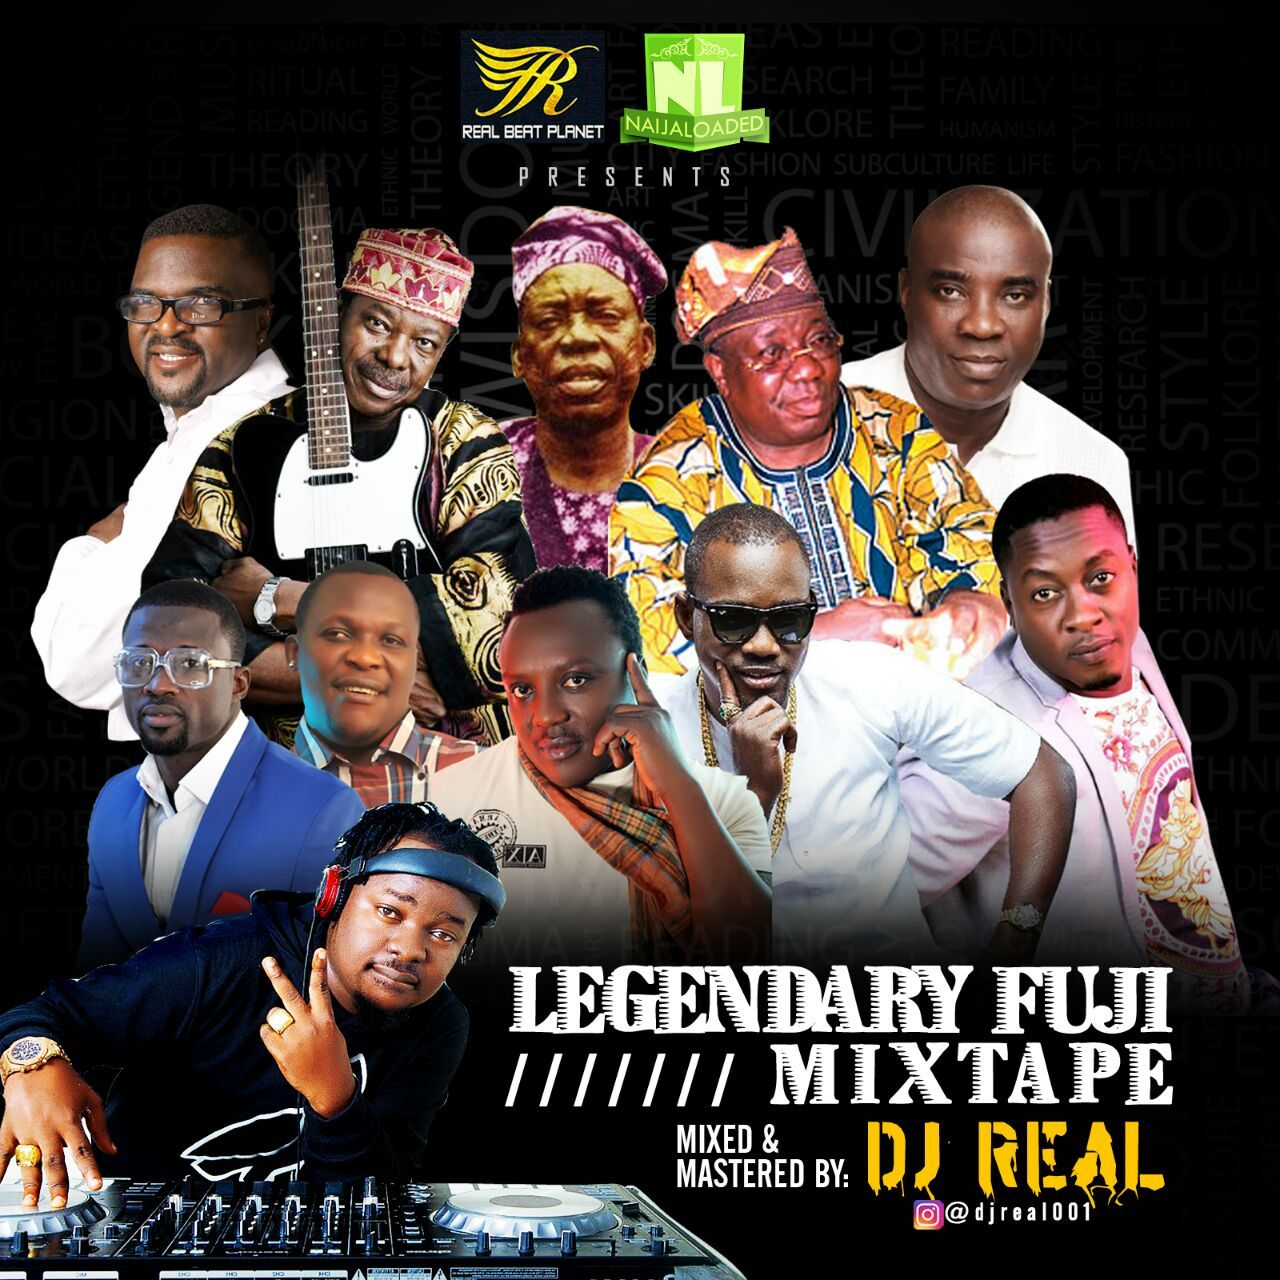 Legendary Fuji Musician, Adewale Ayuba, Has Released A Musical Video Sensitising Nigerians On Preventive Measures To Curtail Covid 19. Ayuba, Who Took To His Instagram Handle (officialayuba) To Showcase The Musical Video, Urged Nigerians To Pray Fervently During This Critical Period For God